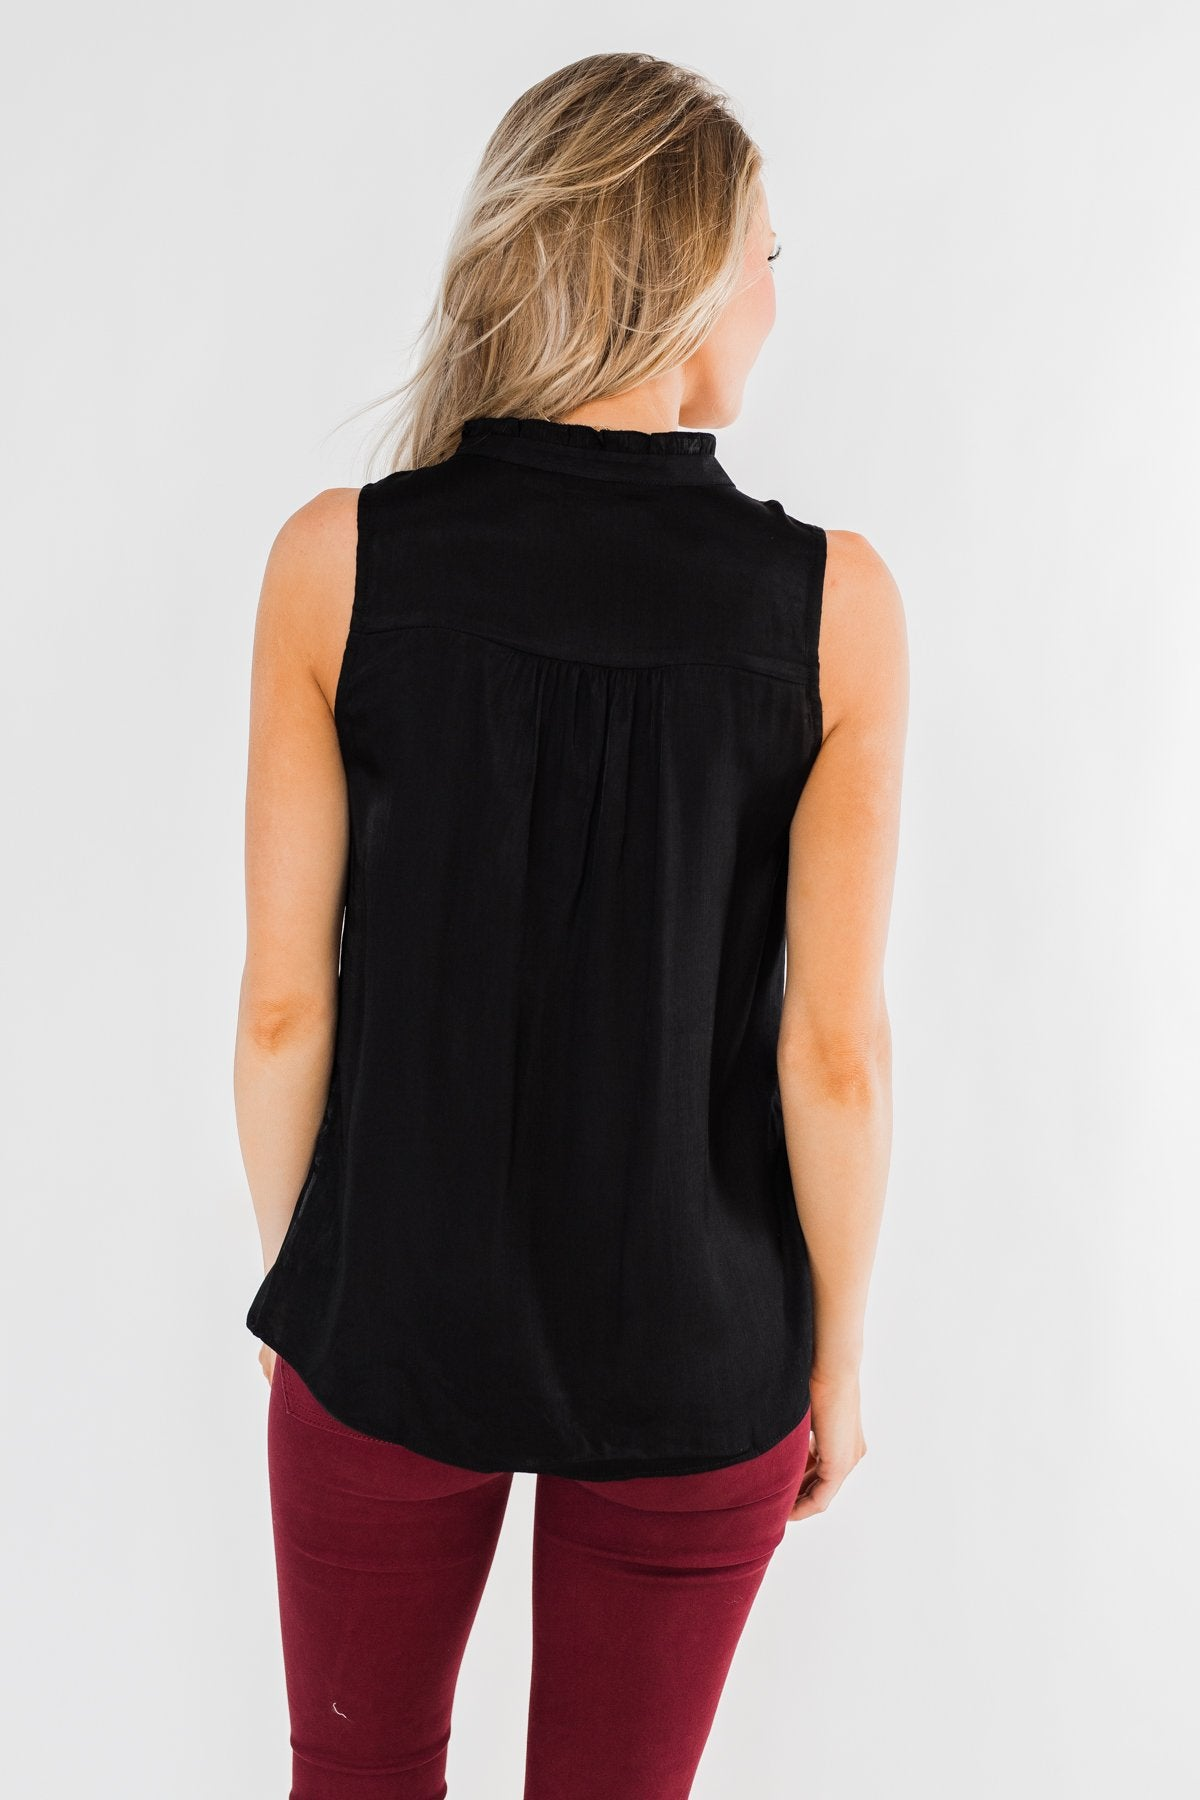 Always Had A Feeling Ruffled Tank Top- Black